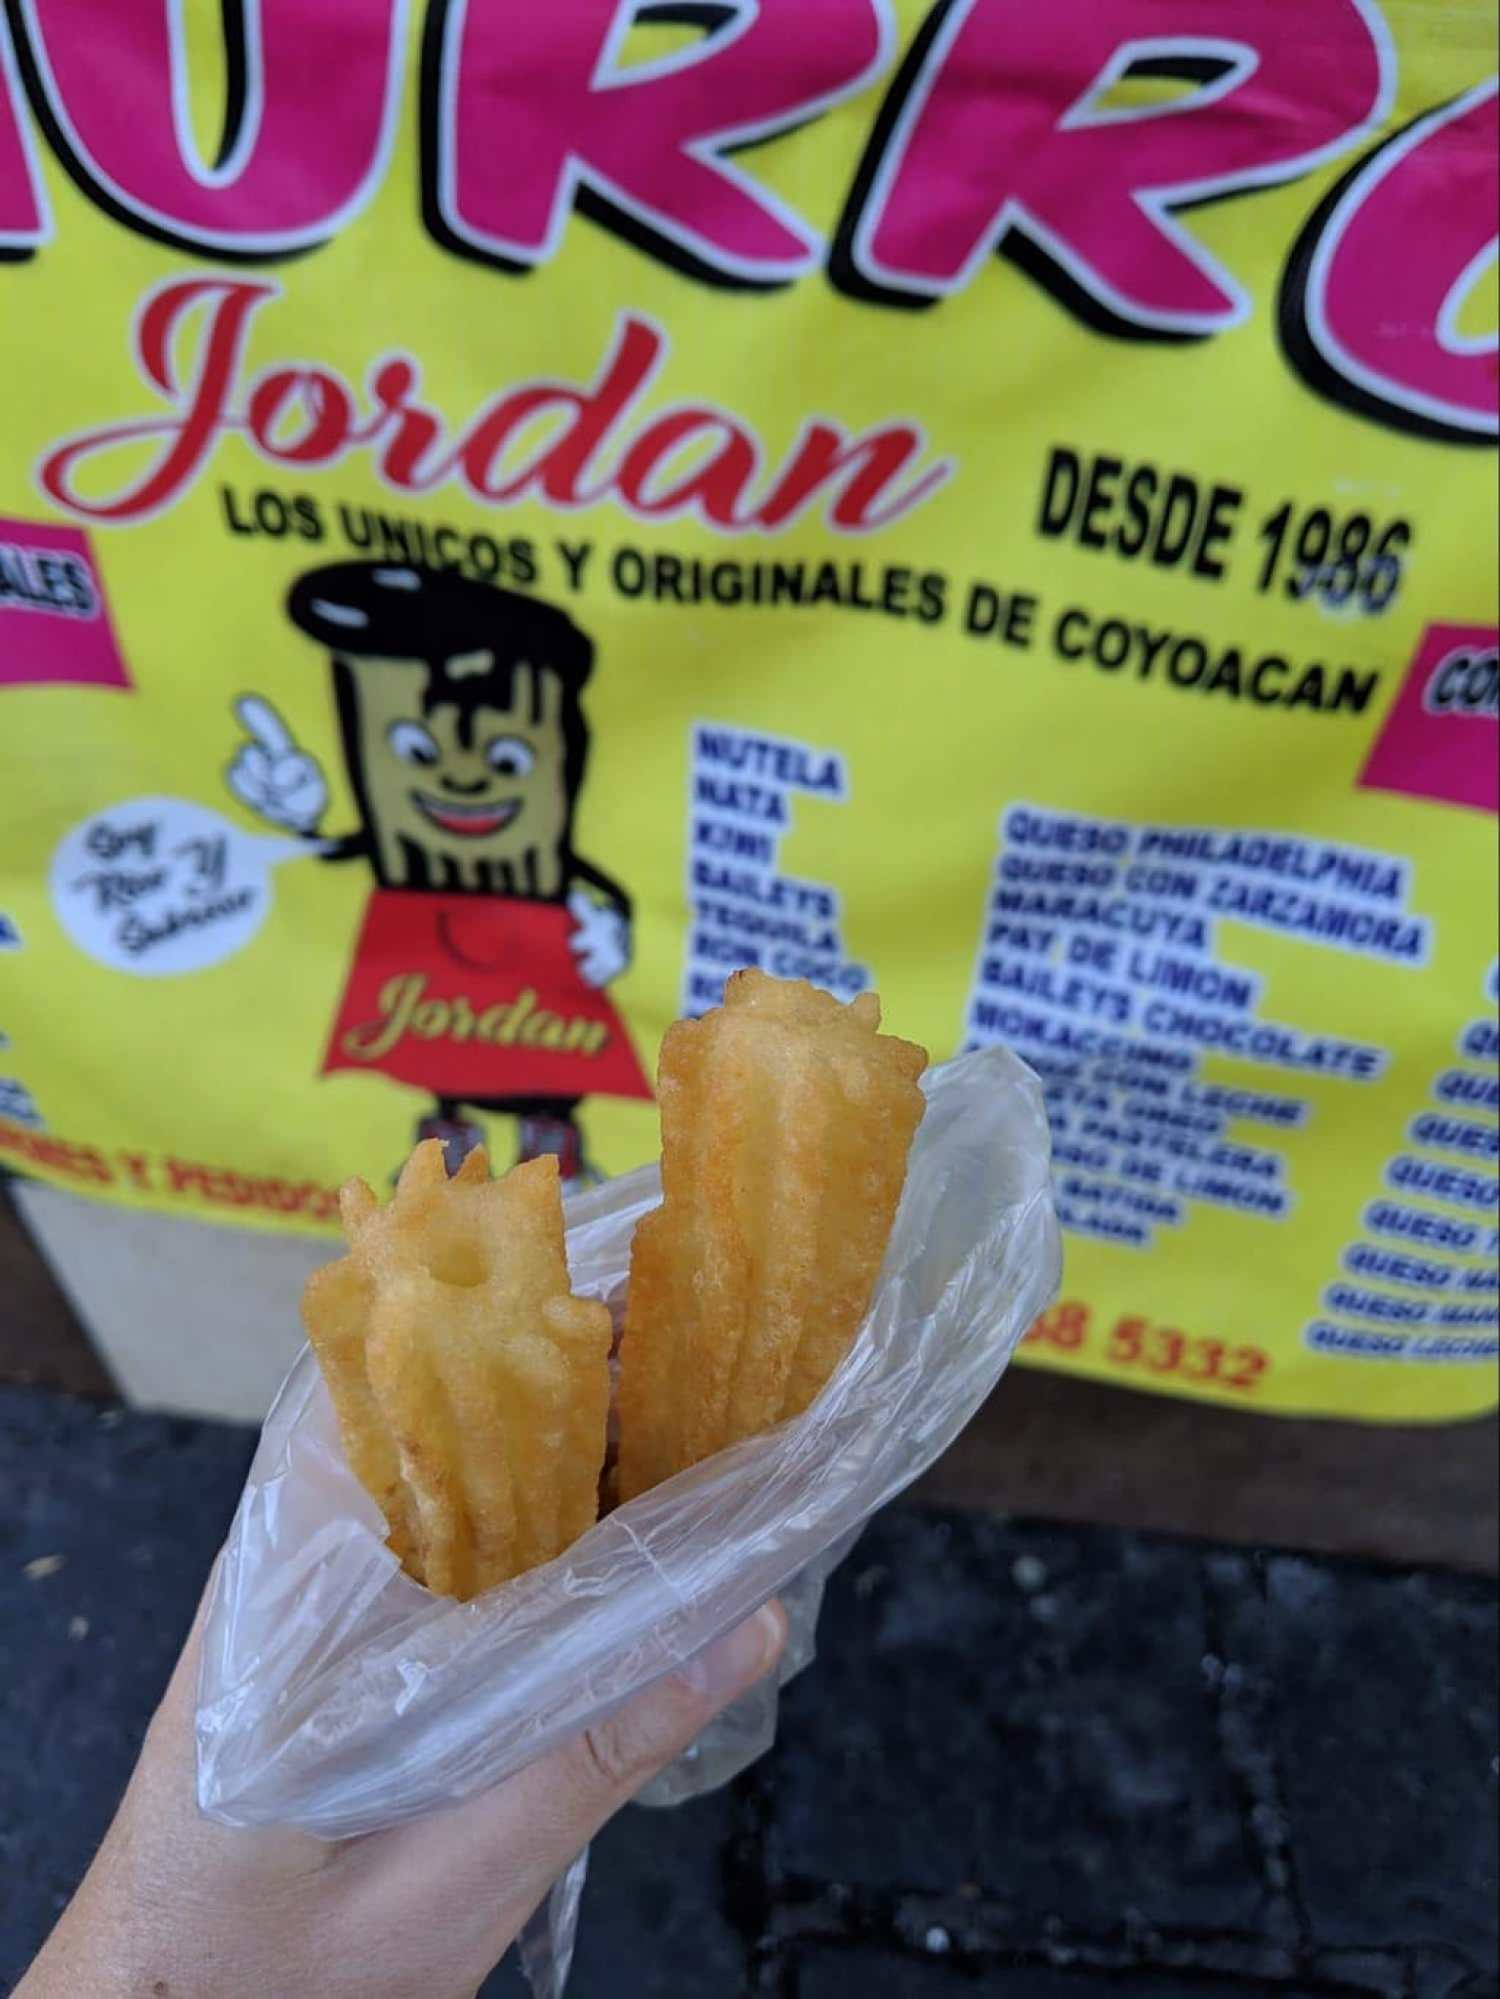 Churros to go from Coyoacan - Mexicans do not eat churros as dessert